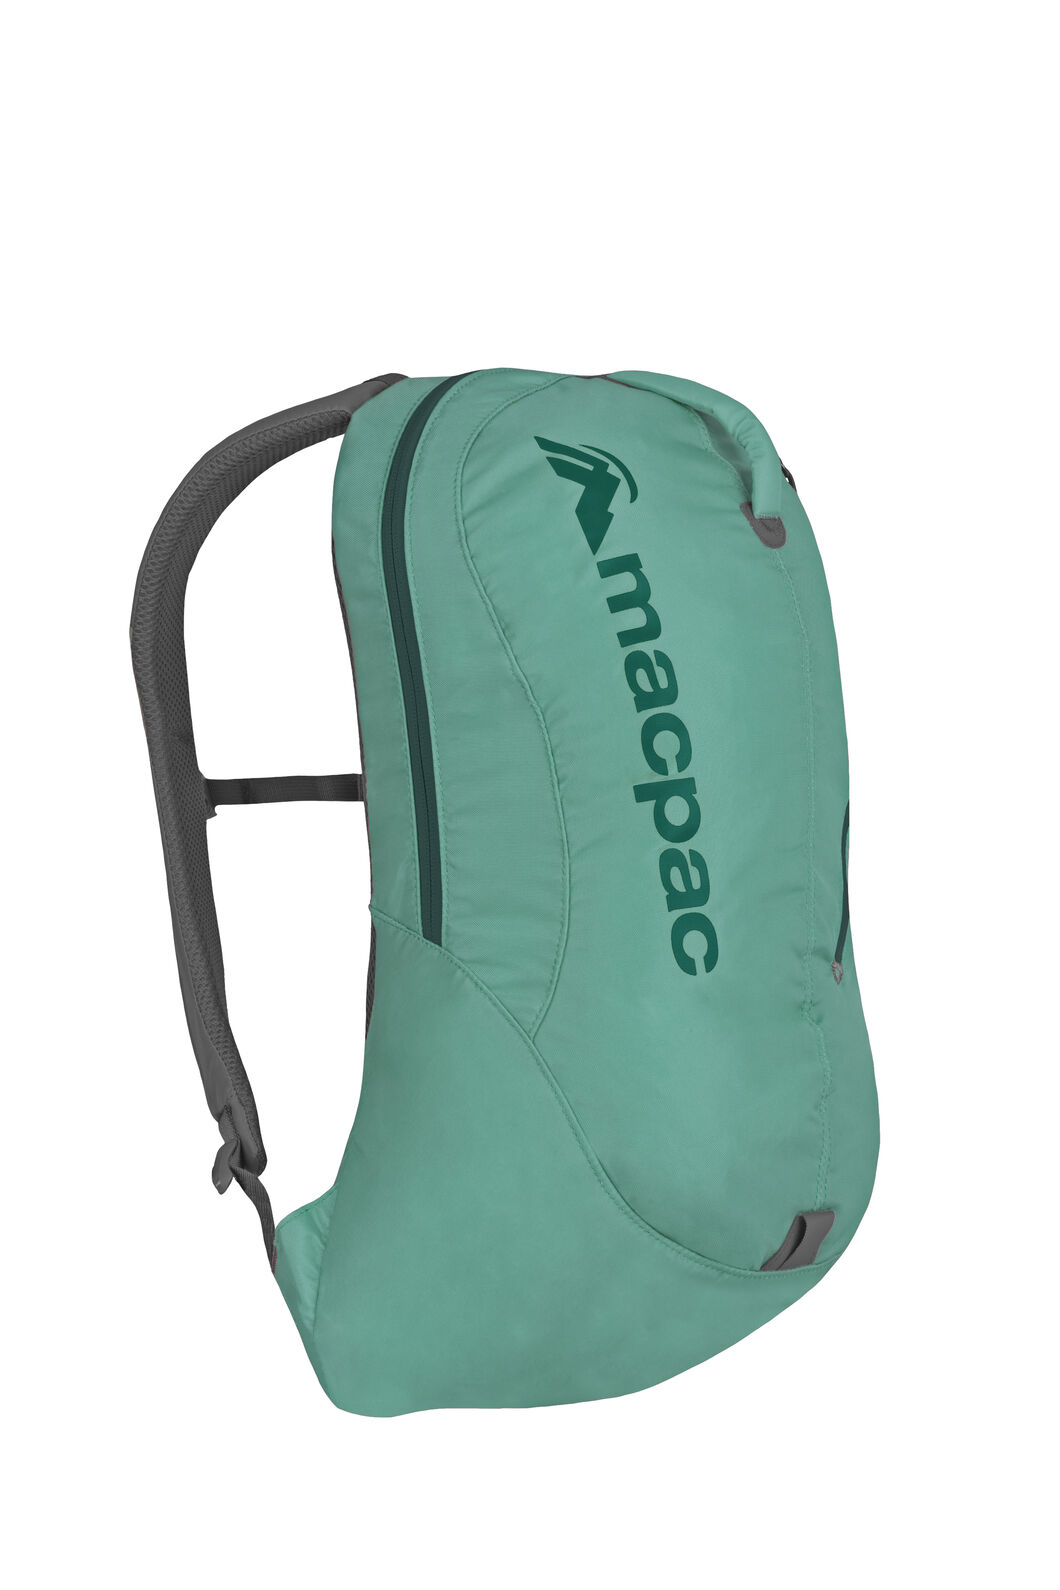 Macpac Kahuna 1.1 18L Backpack, Canton, hi-res